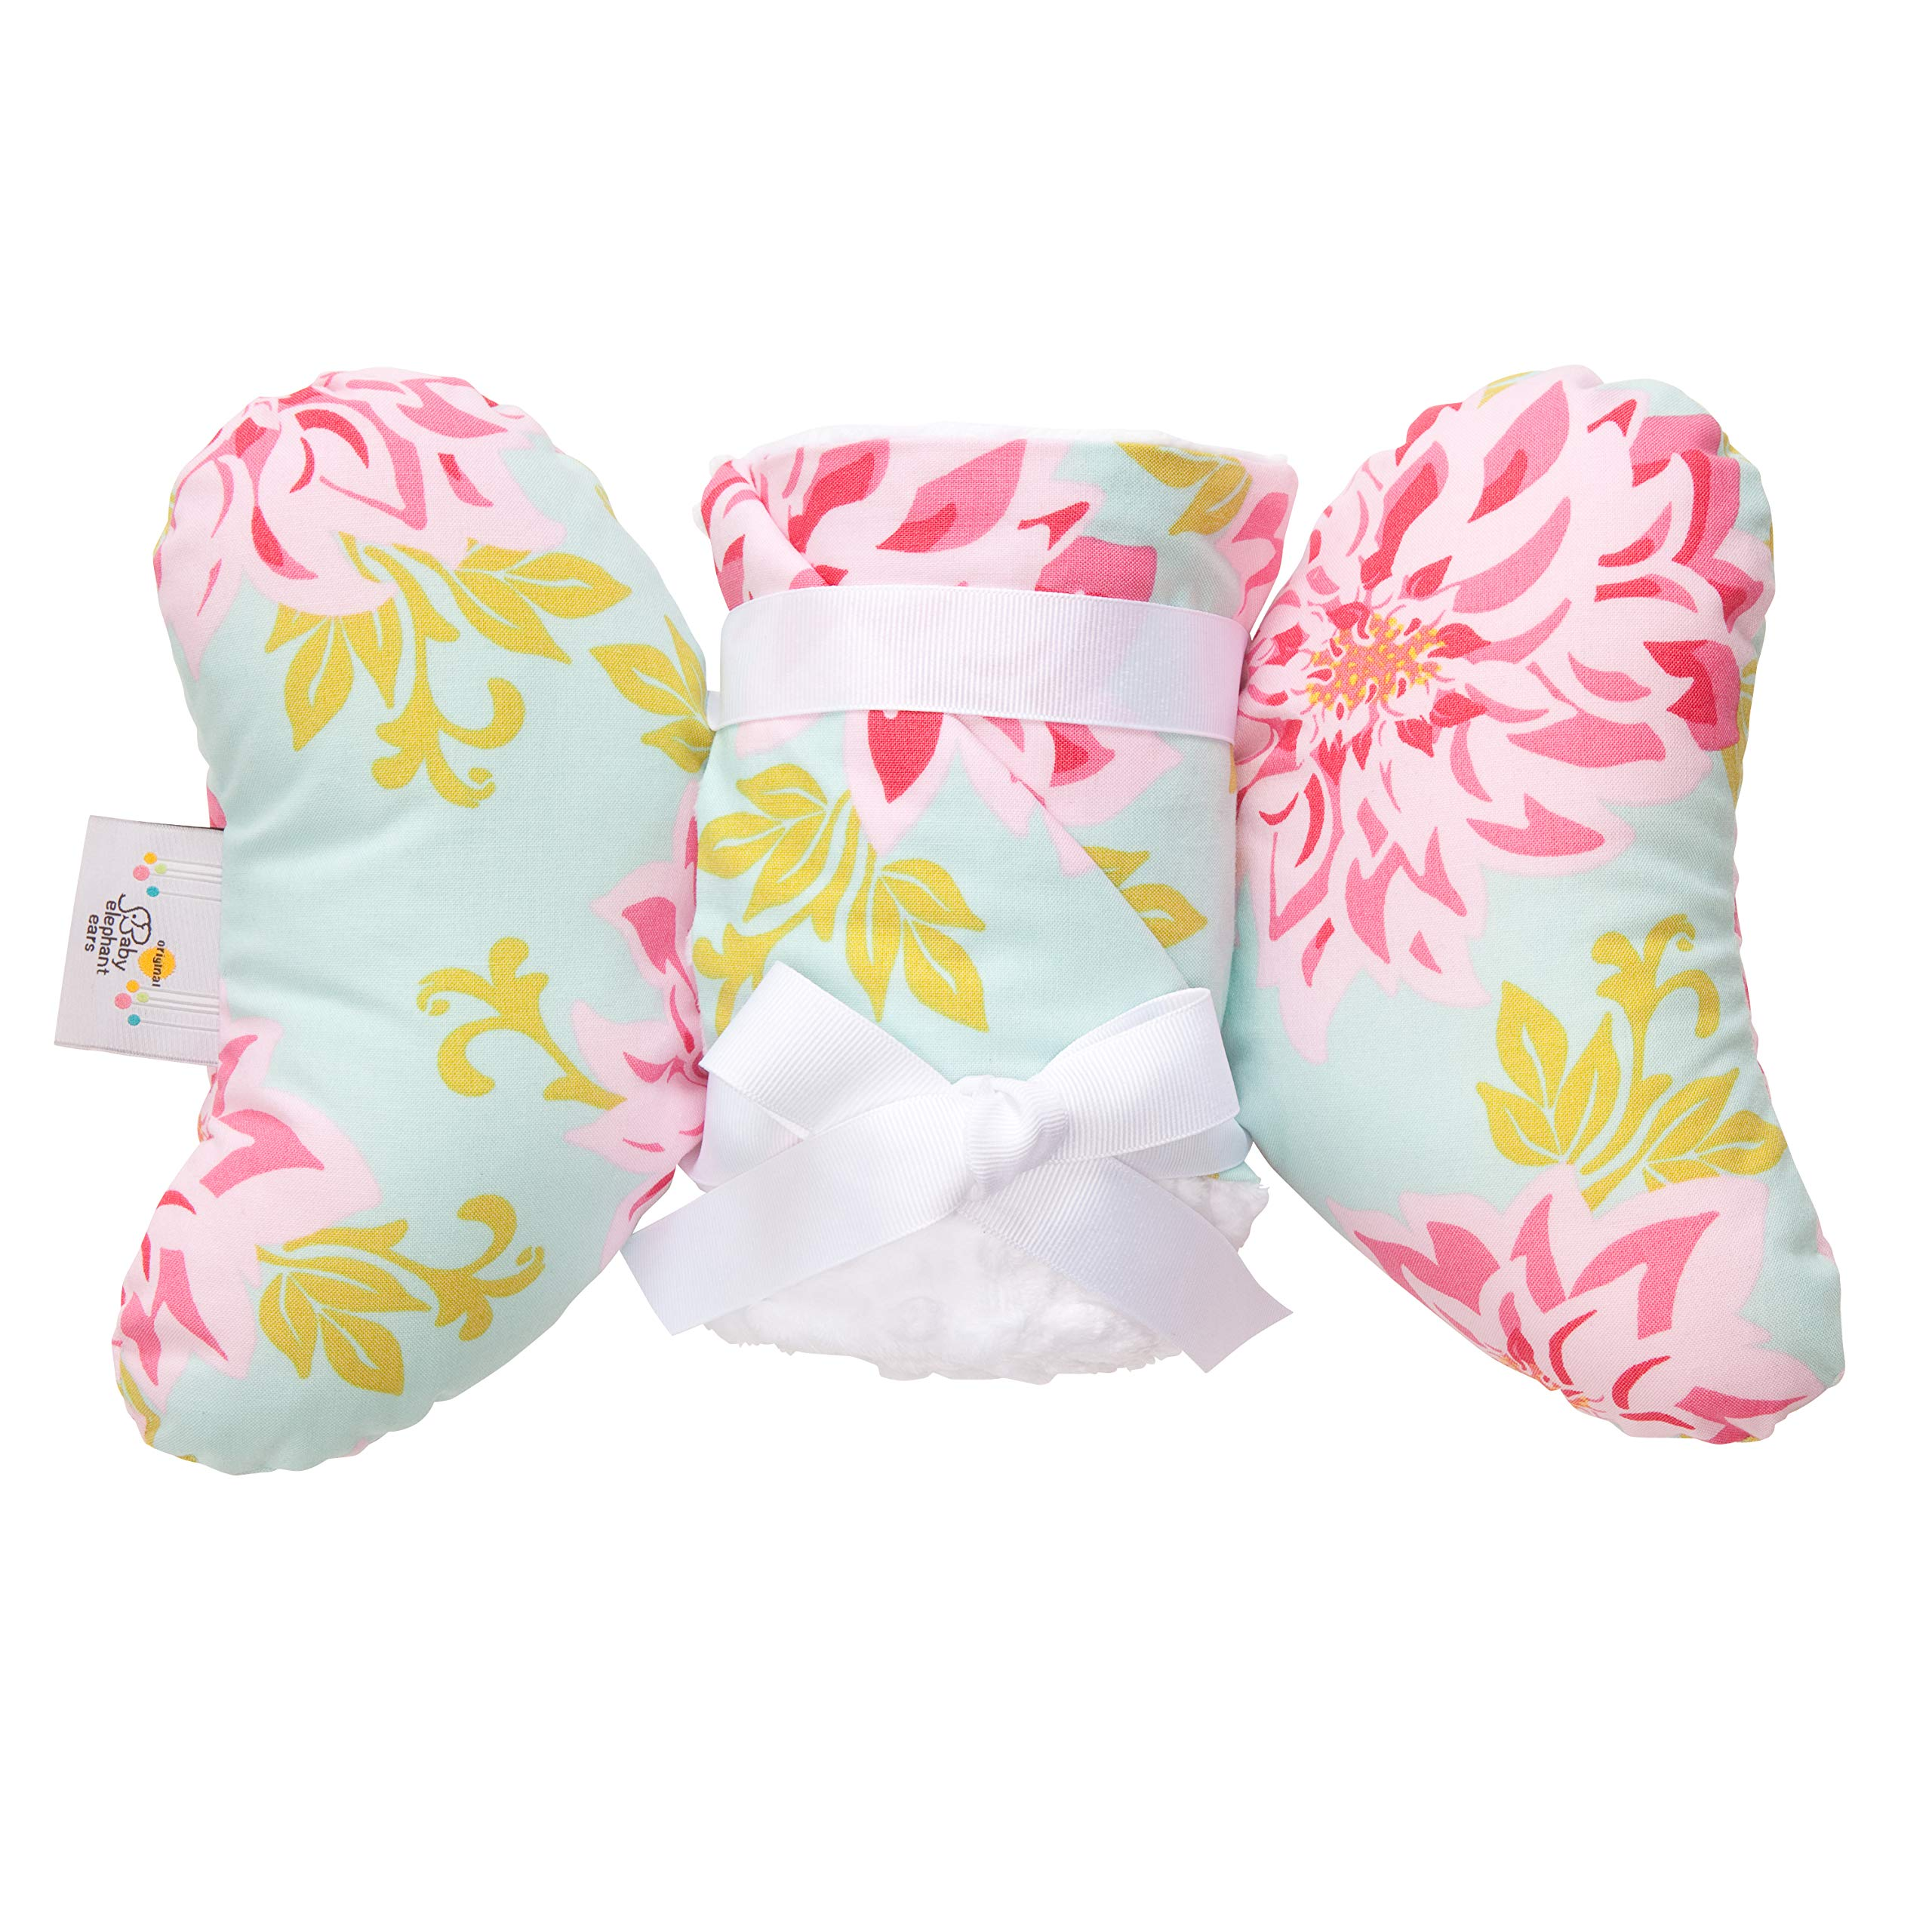 Baby Blanket and Pillow Set, for Newborn Babies to Toddlers, Gift Set for Baby Showers, Birthdays, or Holidays - Baby Elephant Ears (Dahlia)